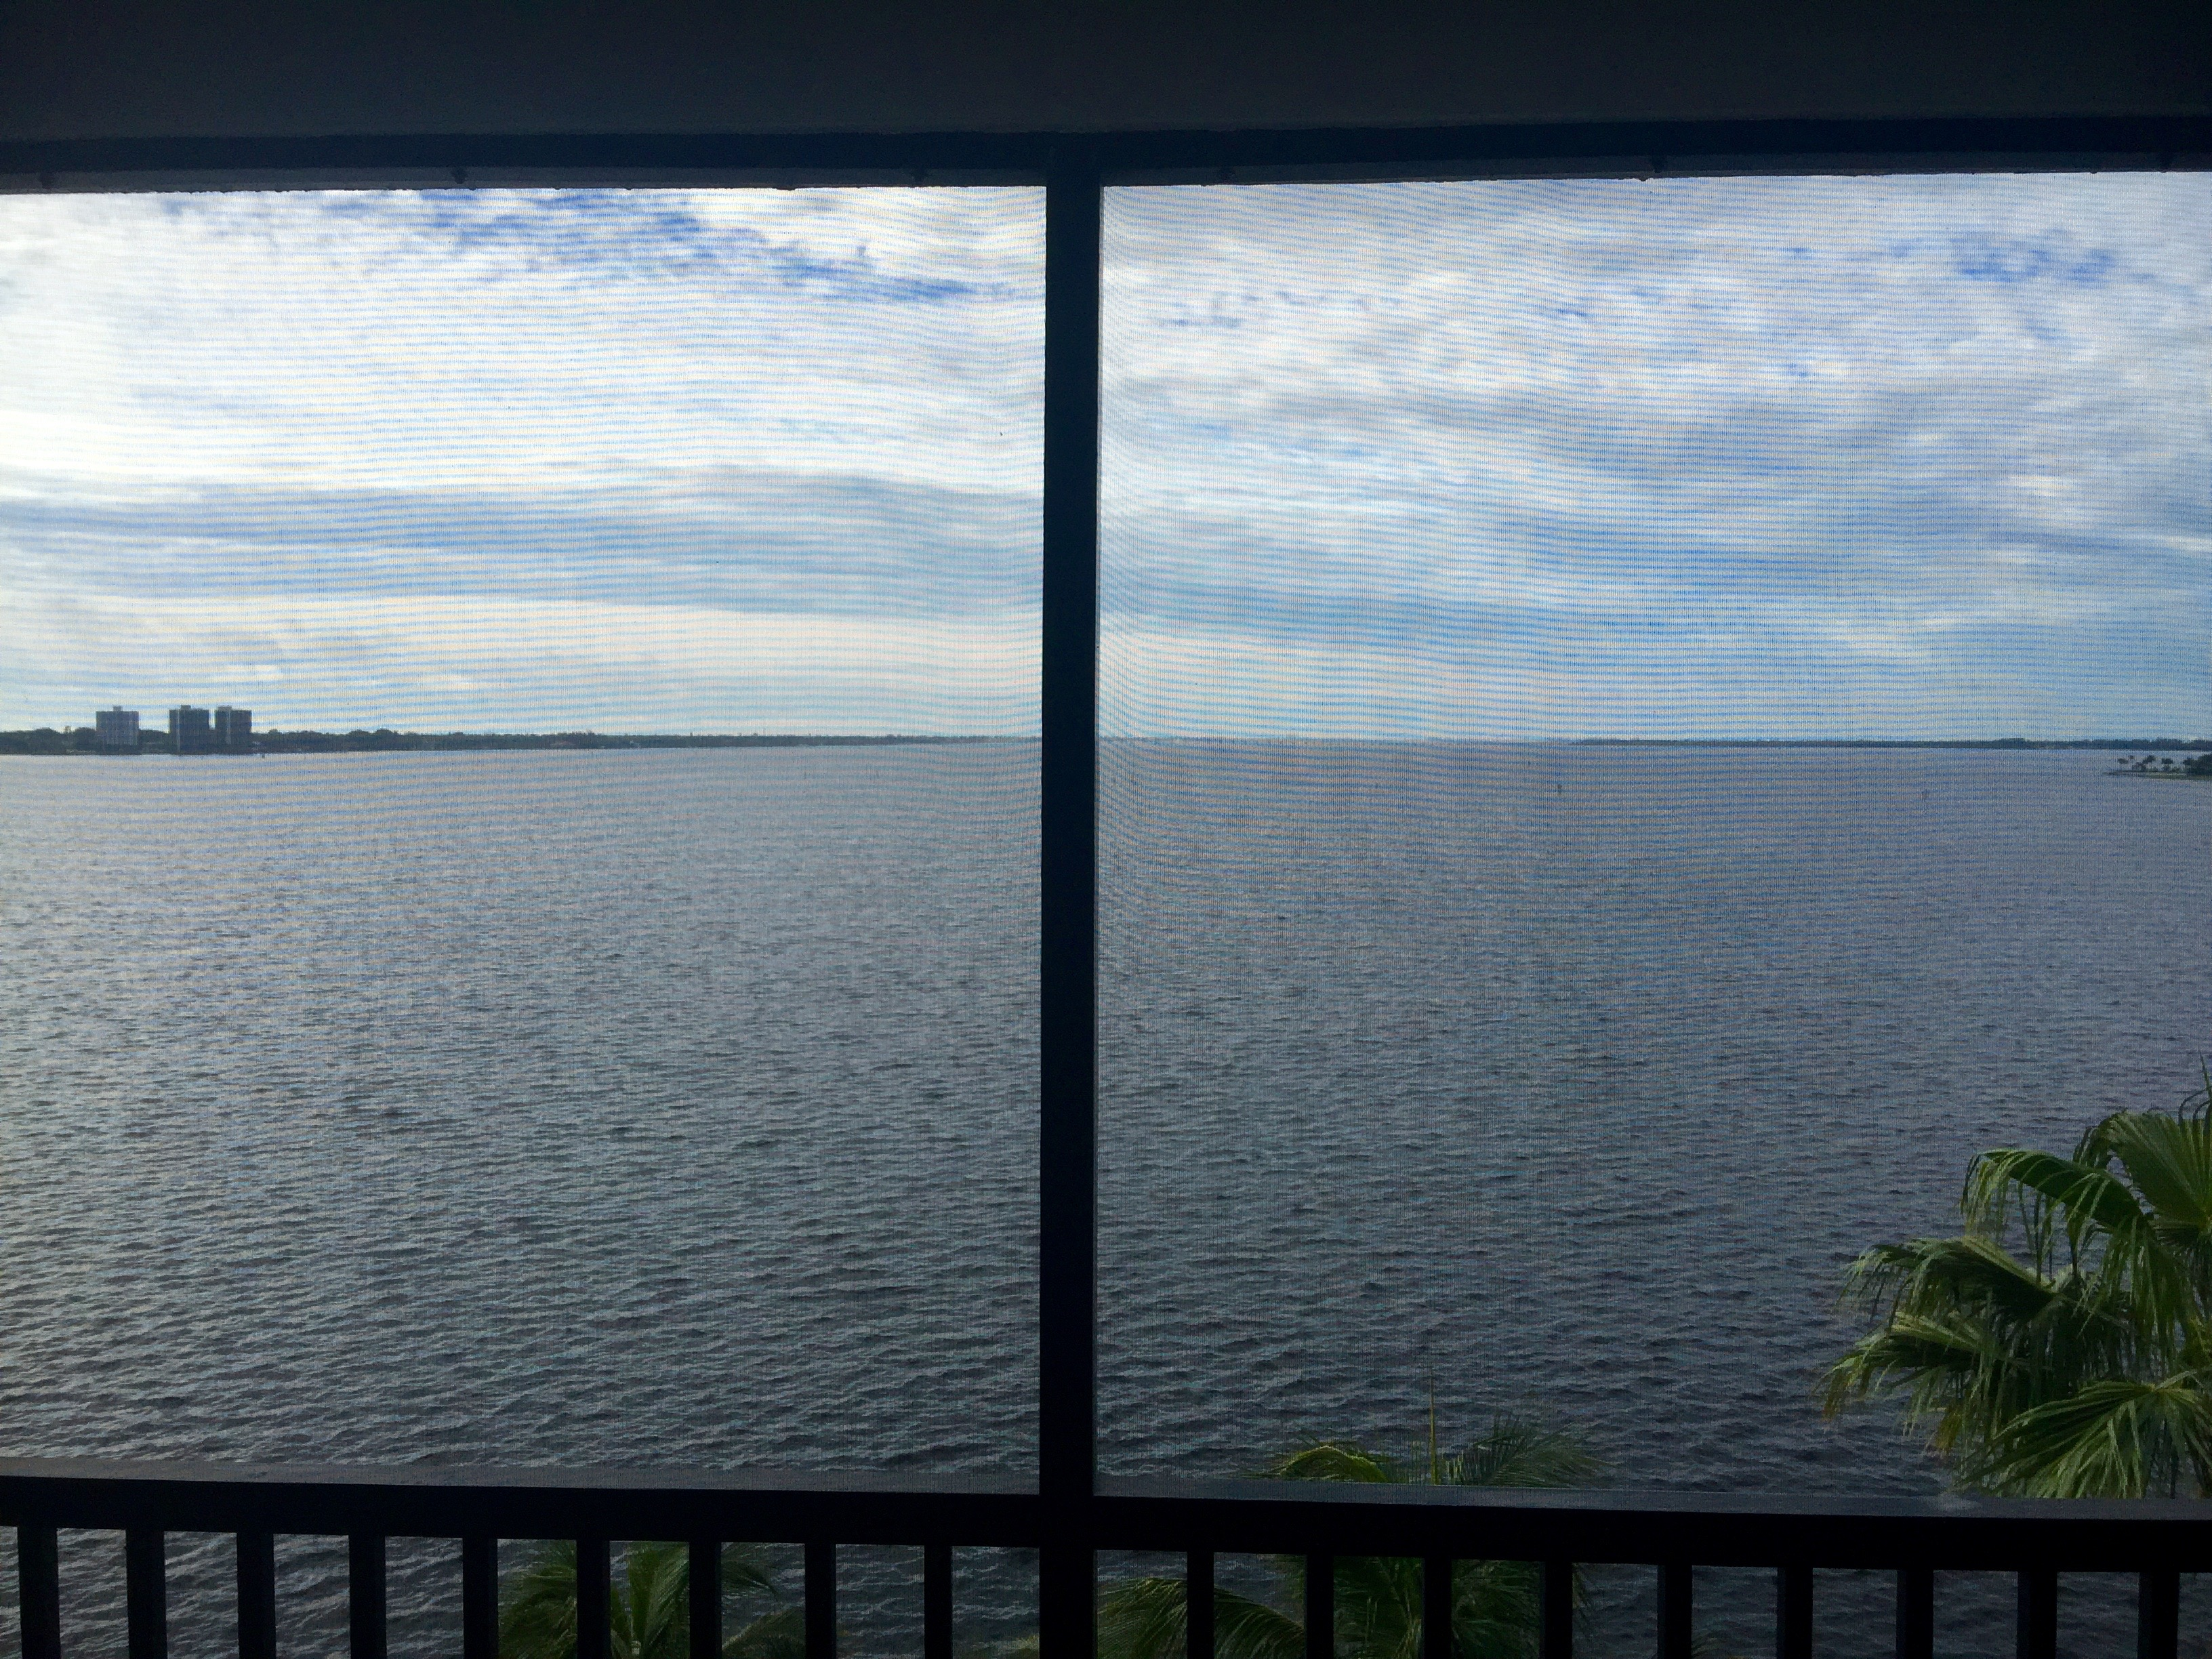 Amazing views of the Caloosahatchee River